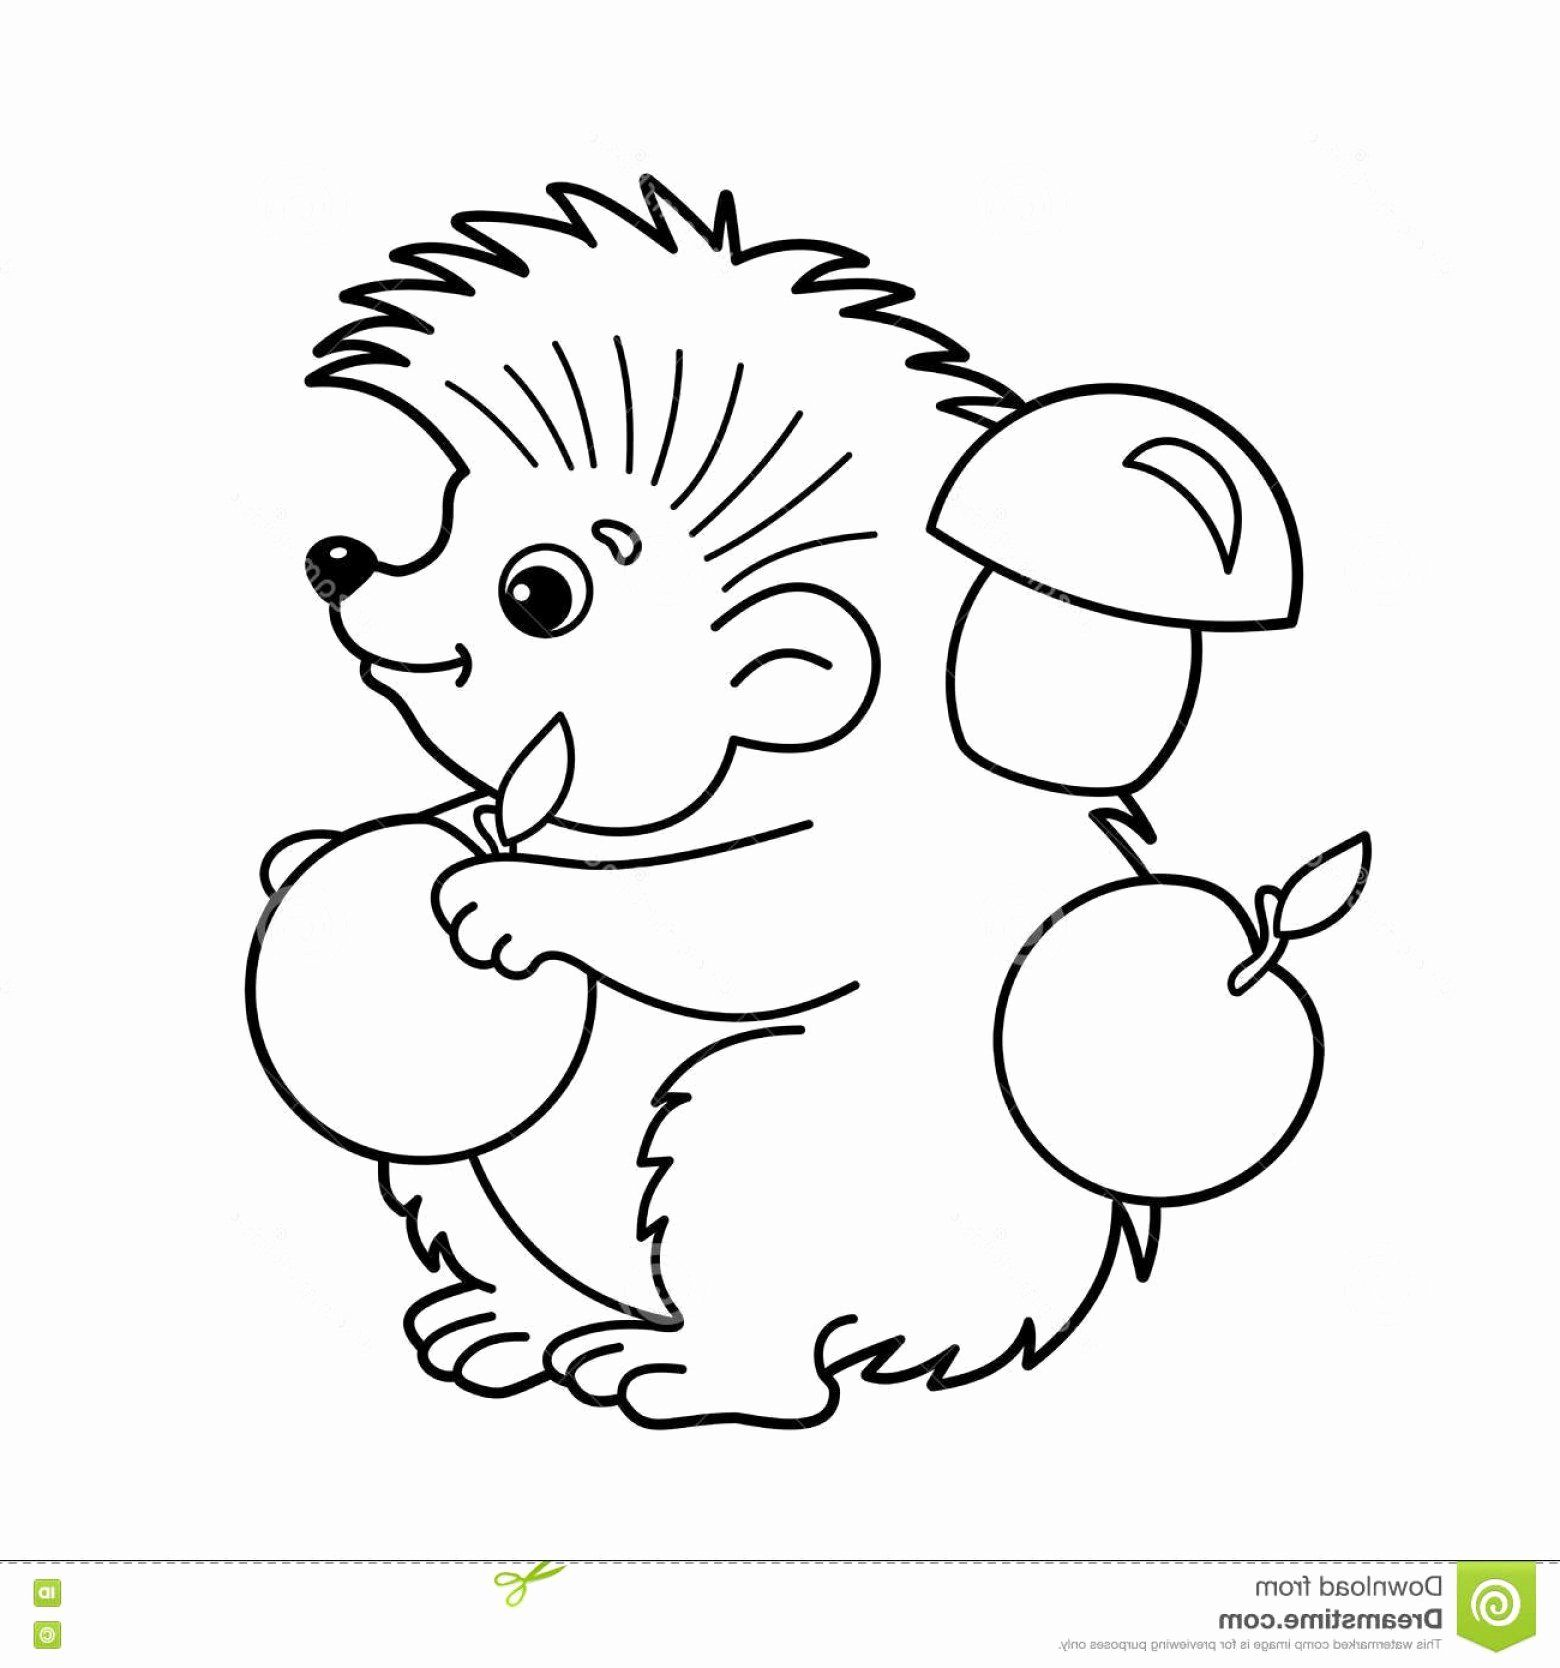 Cartoon Characters Coloring Sheets Lovely Stock Illustration